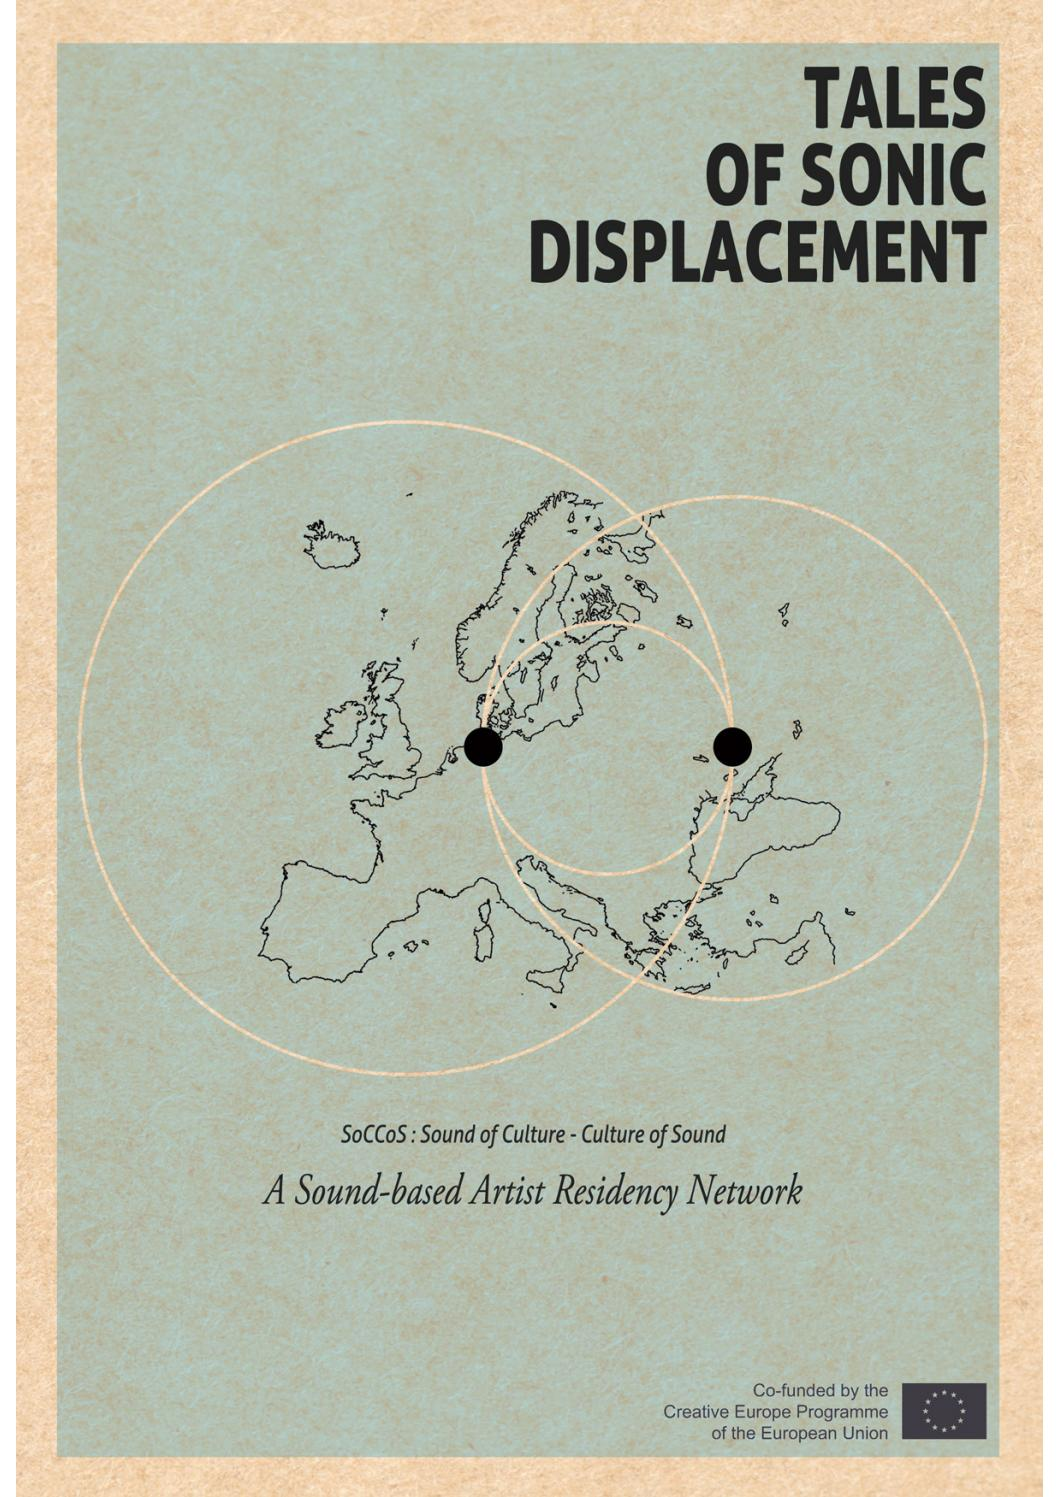 Publication: Tales of Sonic Displacement